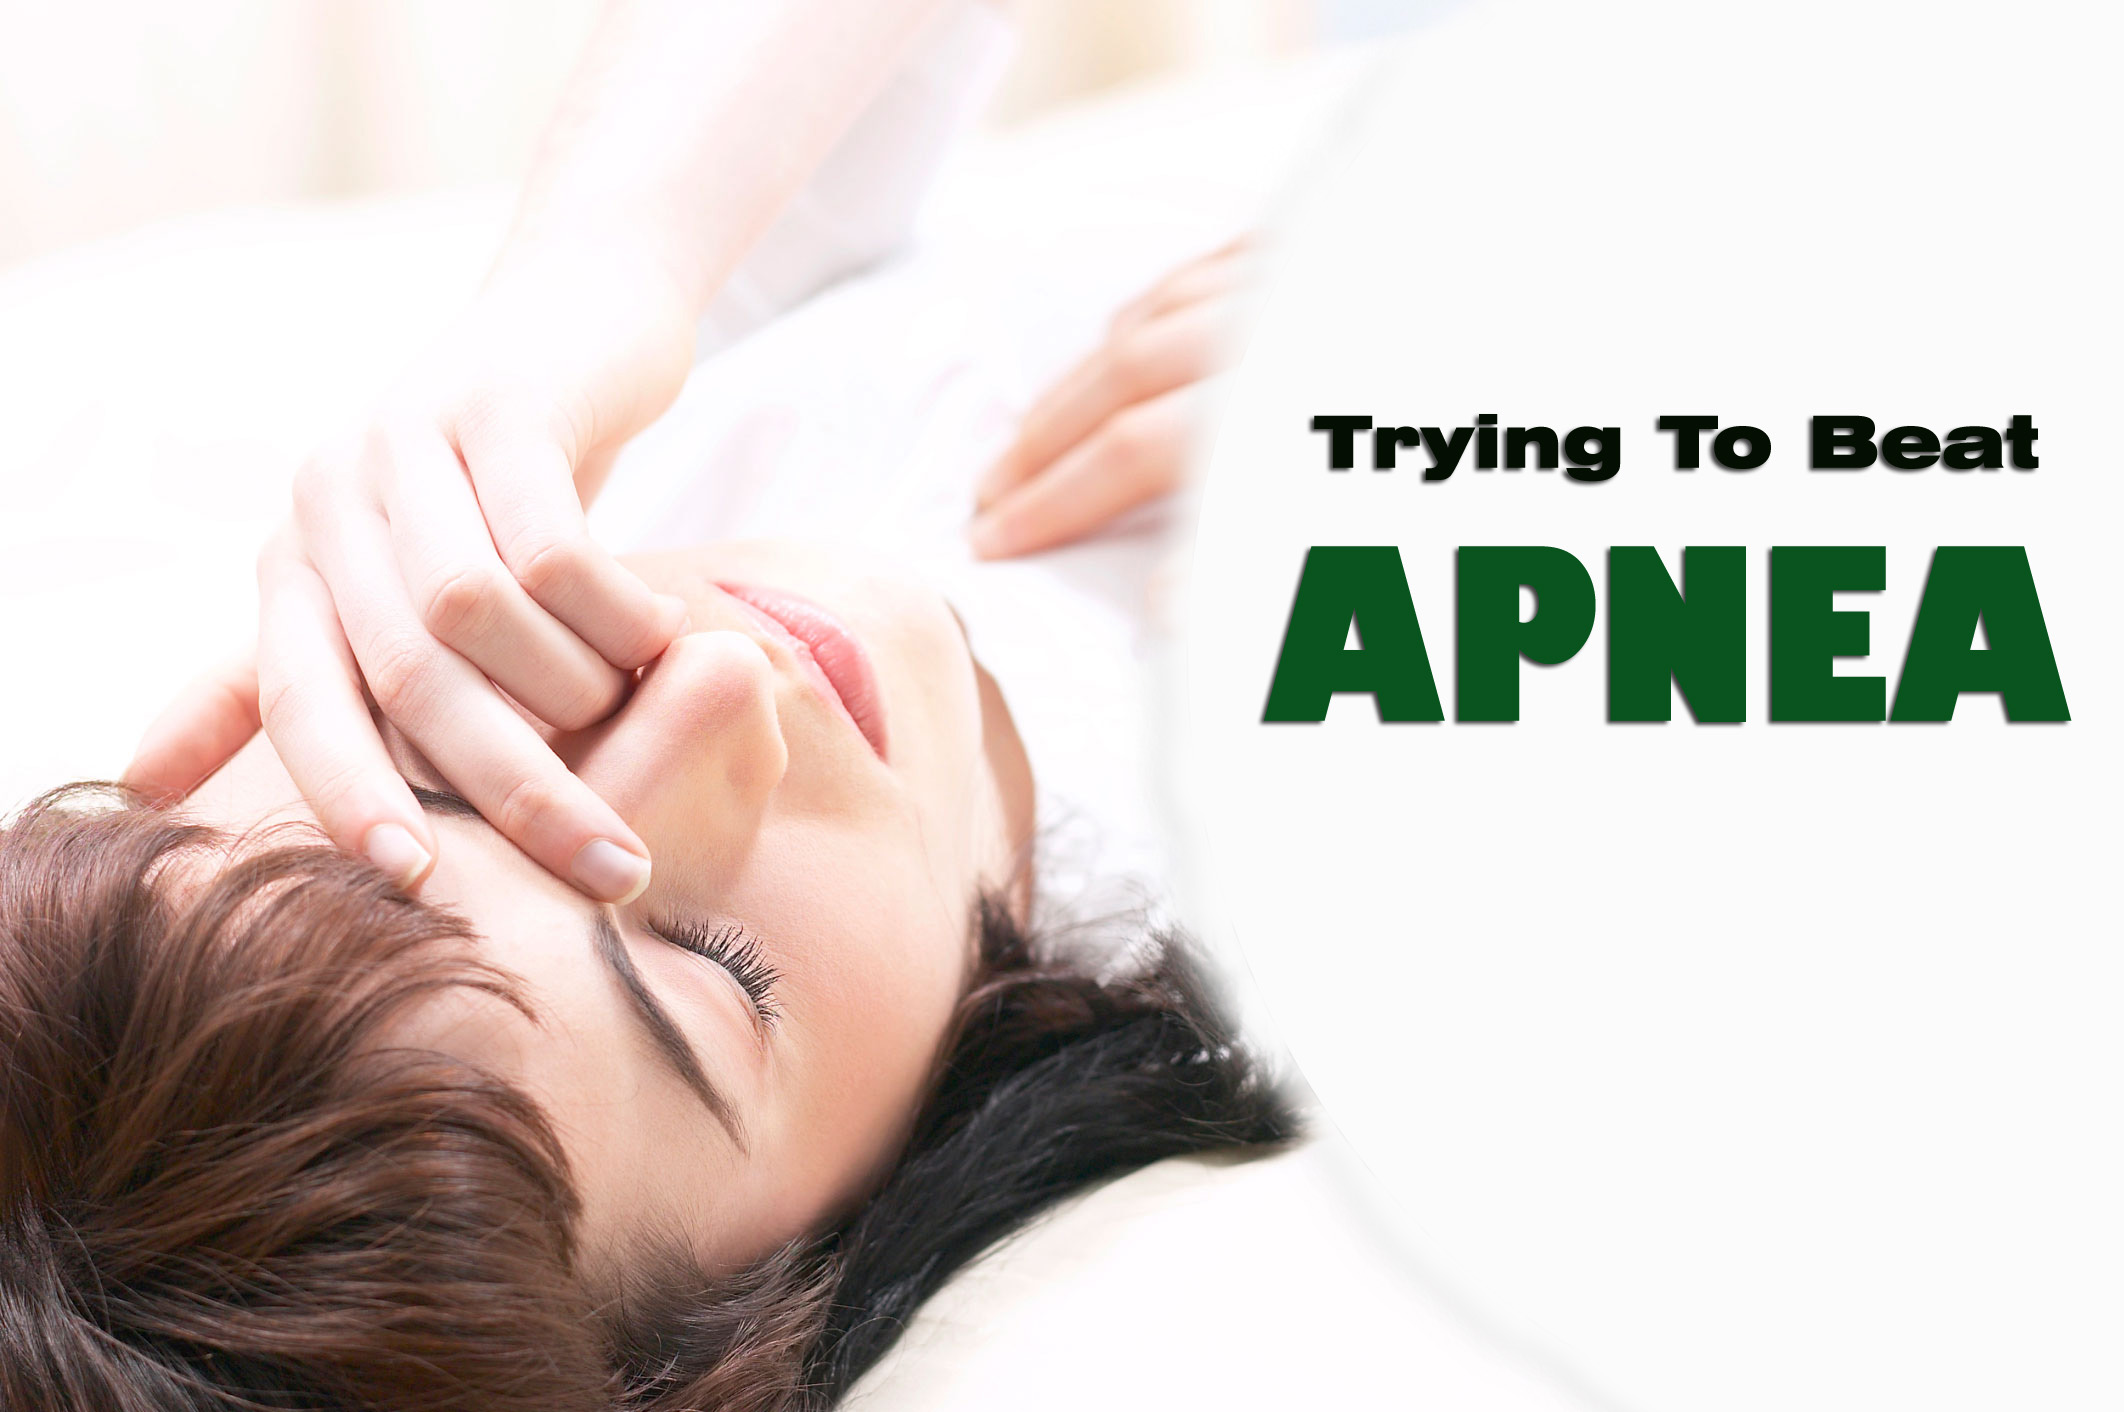 Trying To Beat Apnea? This Information Is To Suit Your Needs